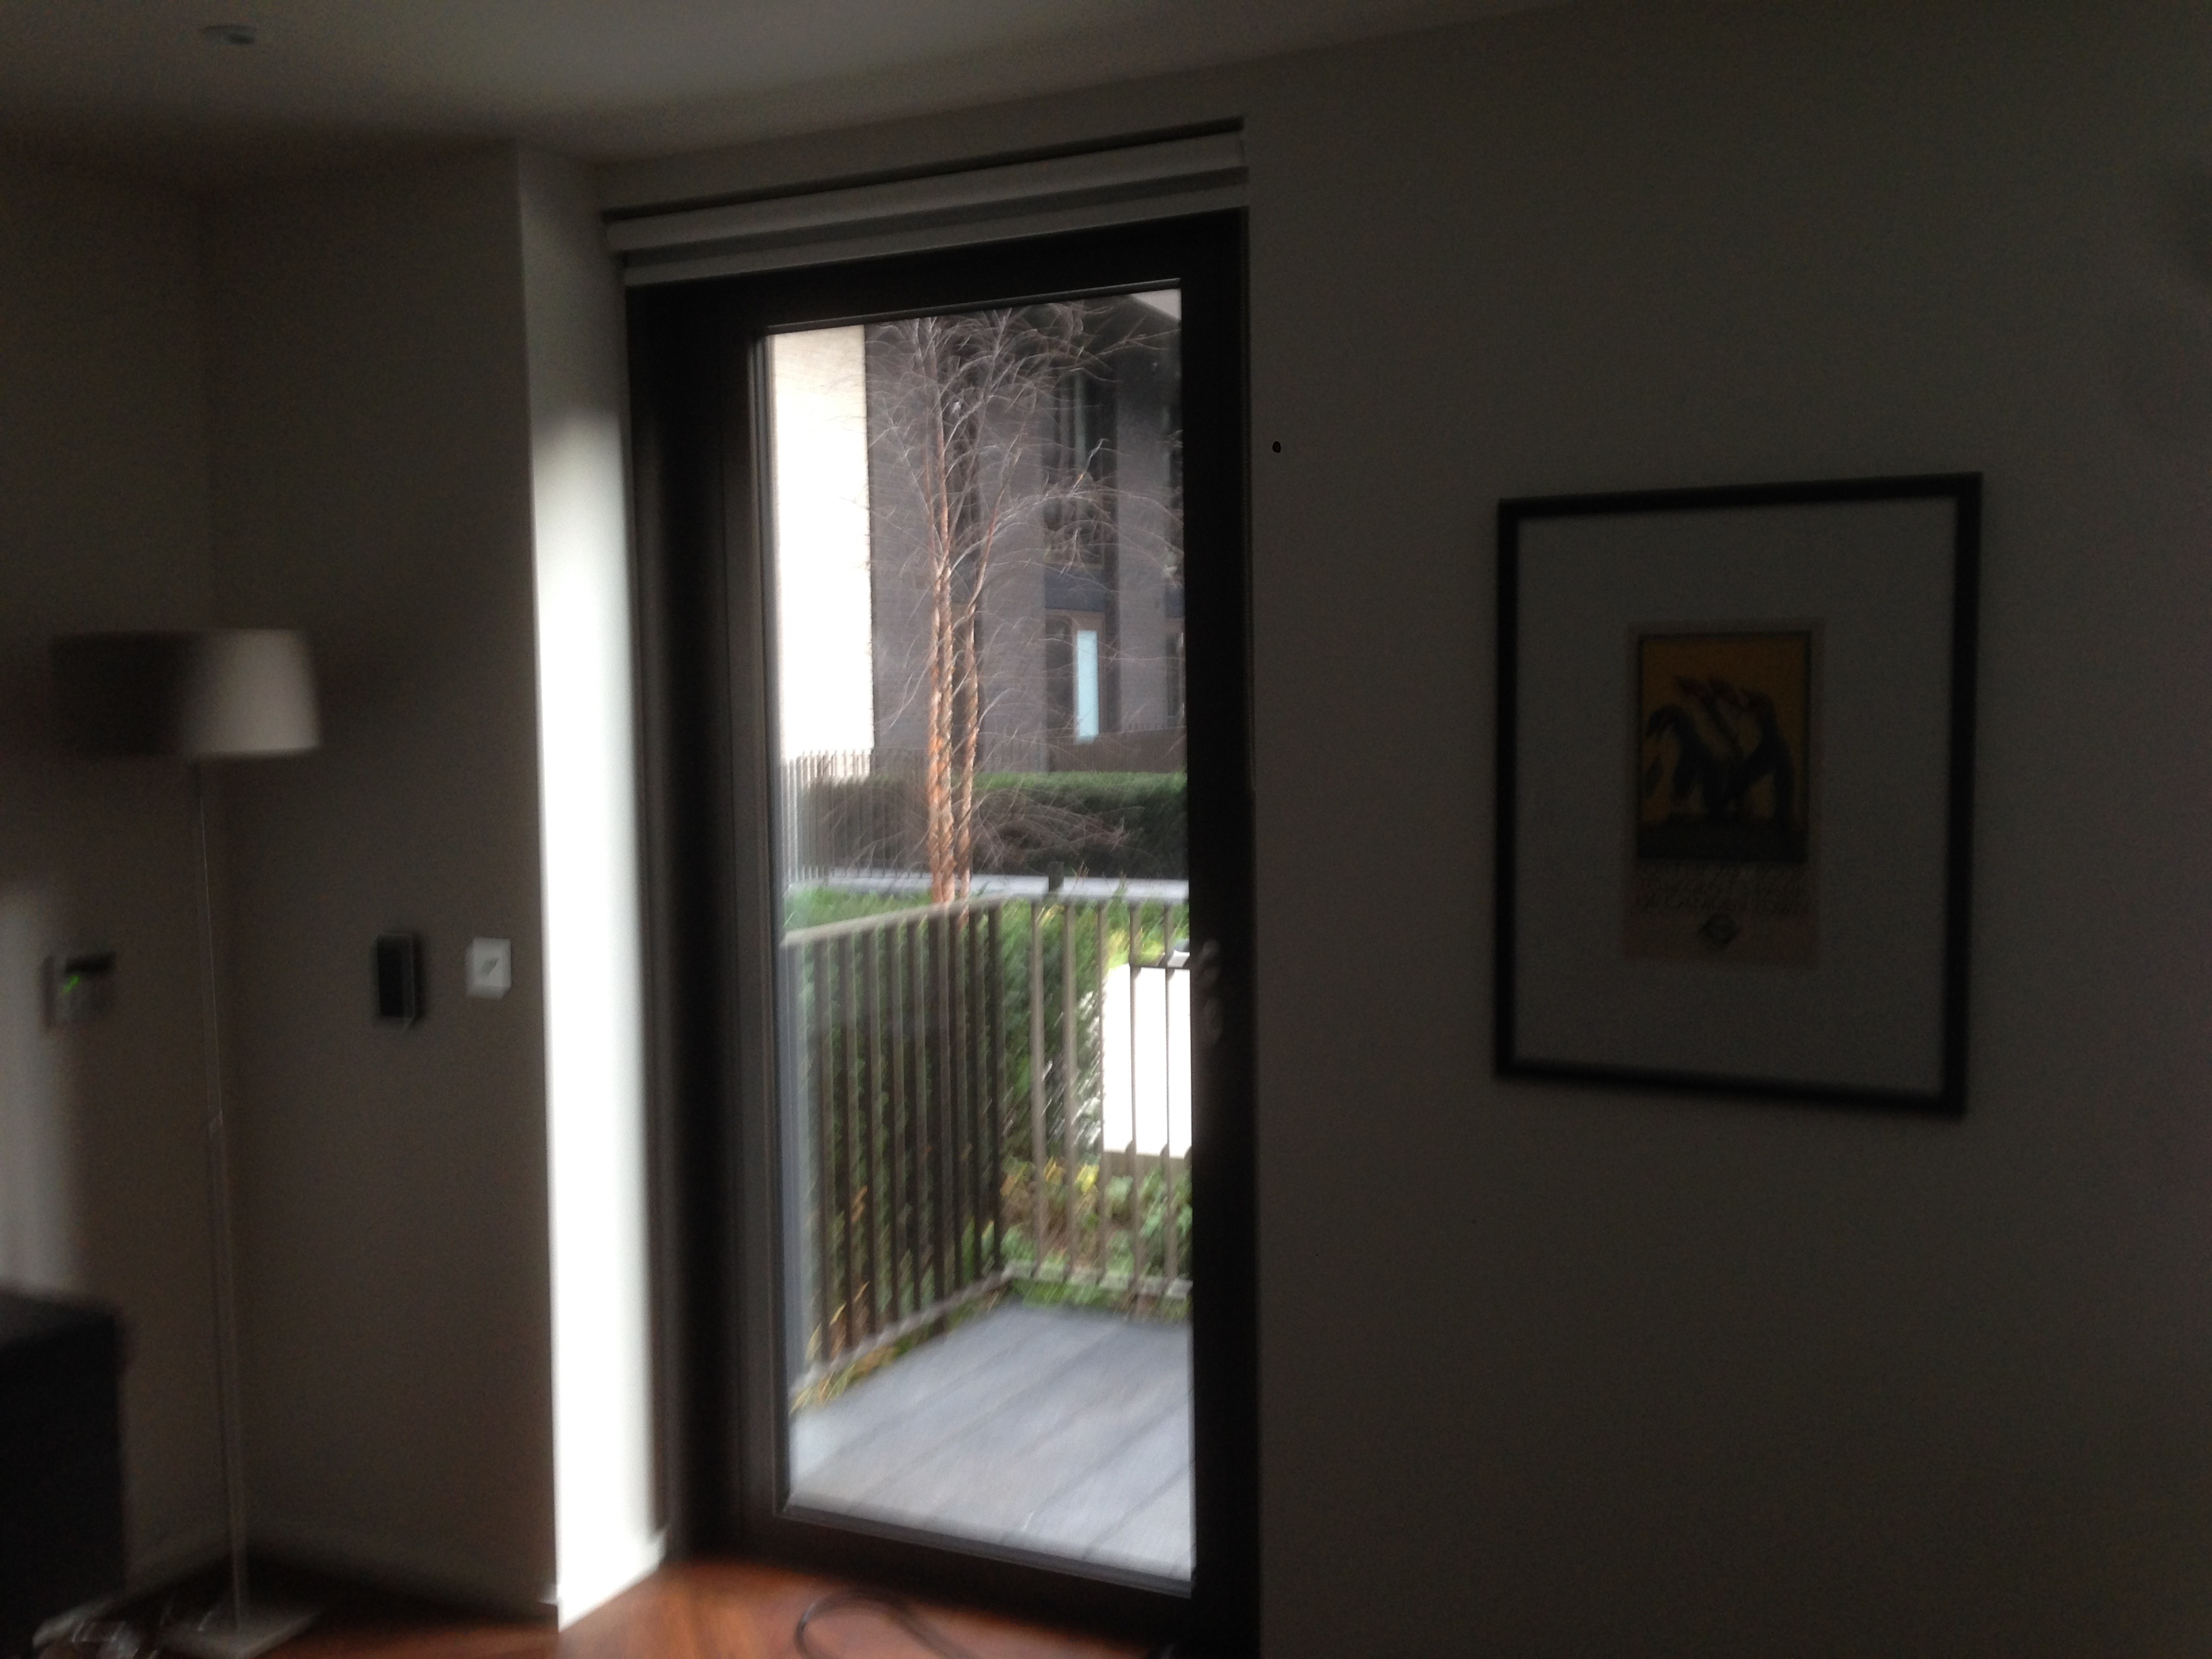 Privacy Film Installation - Before